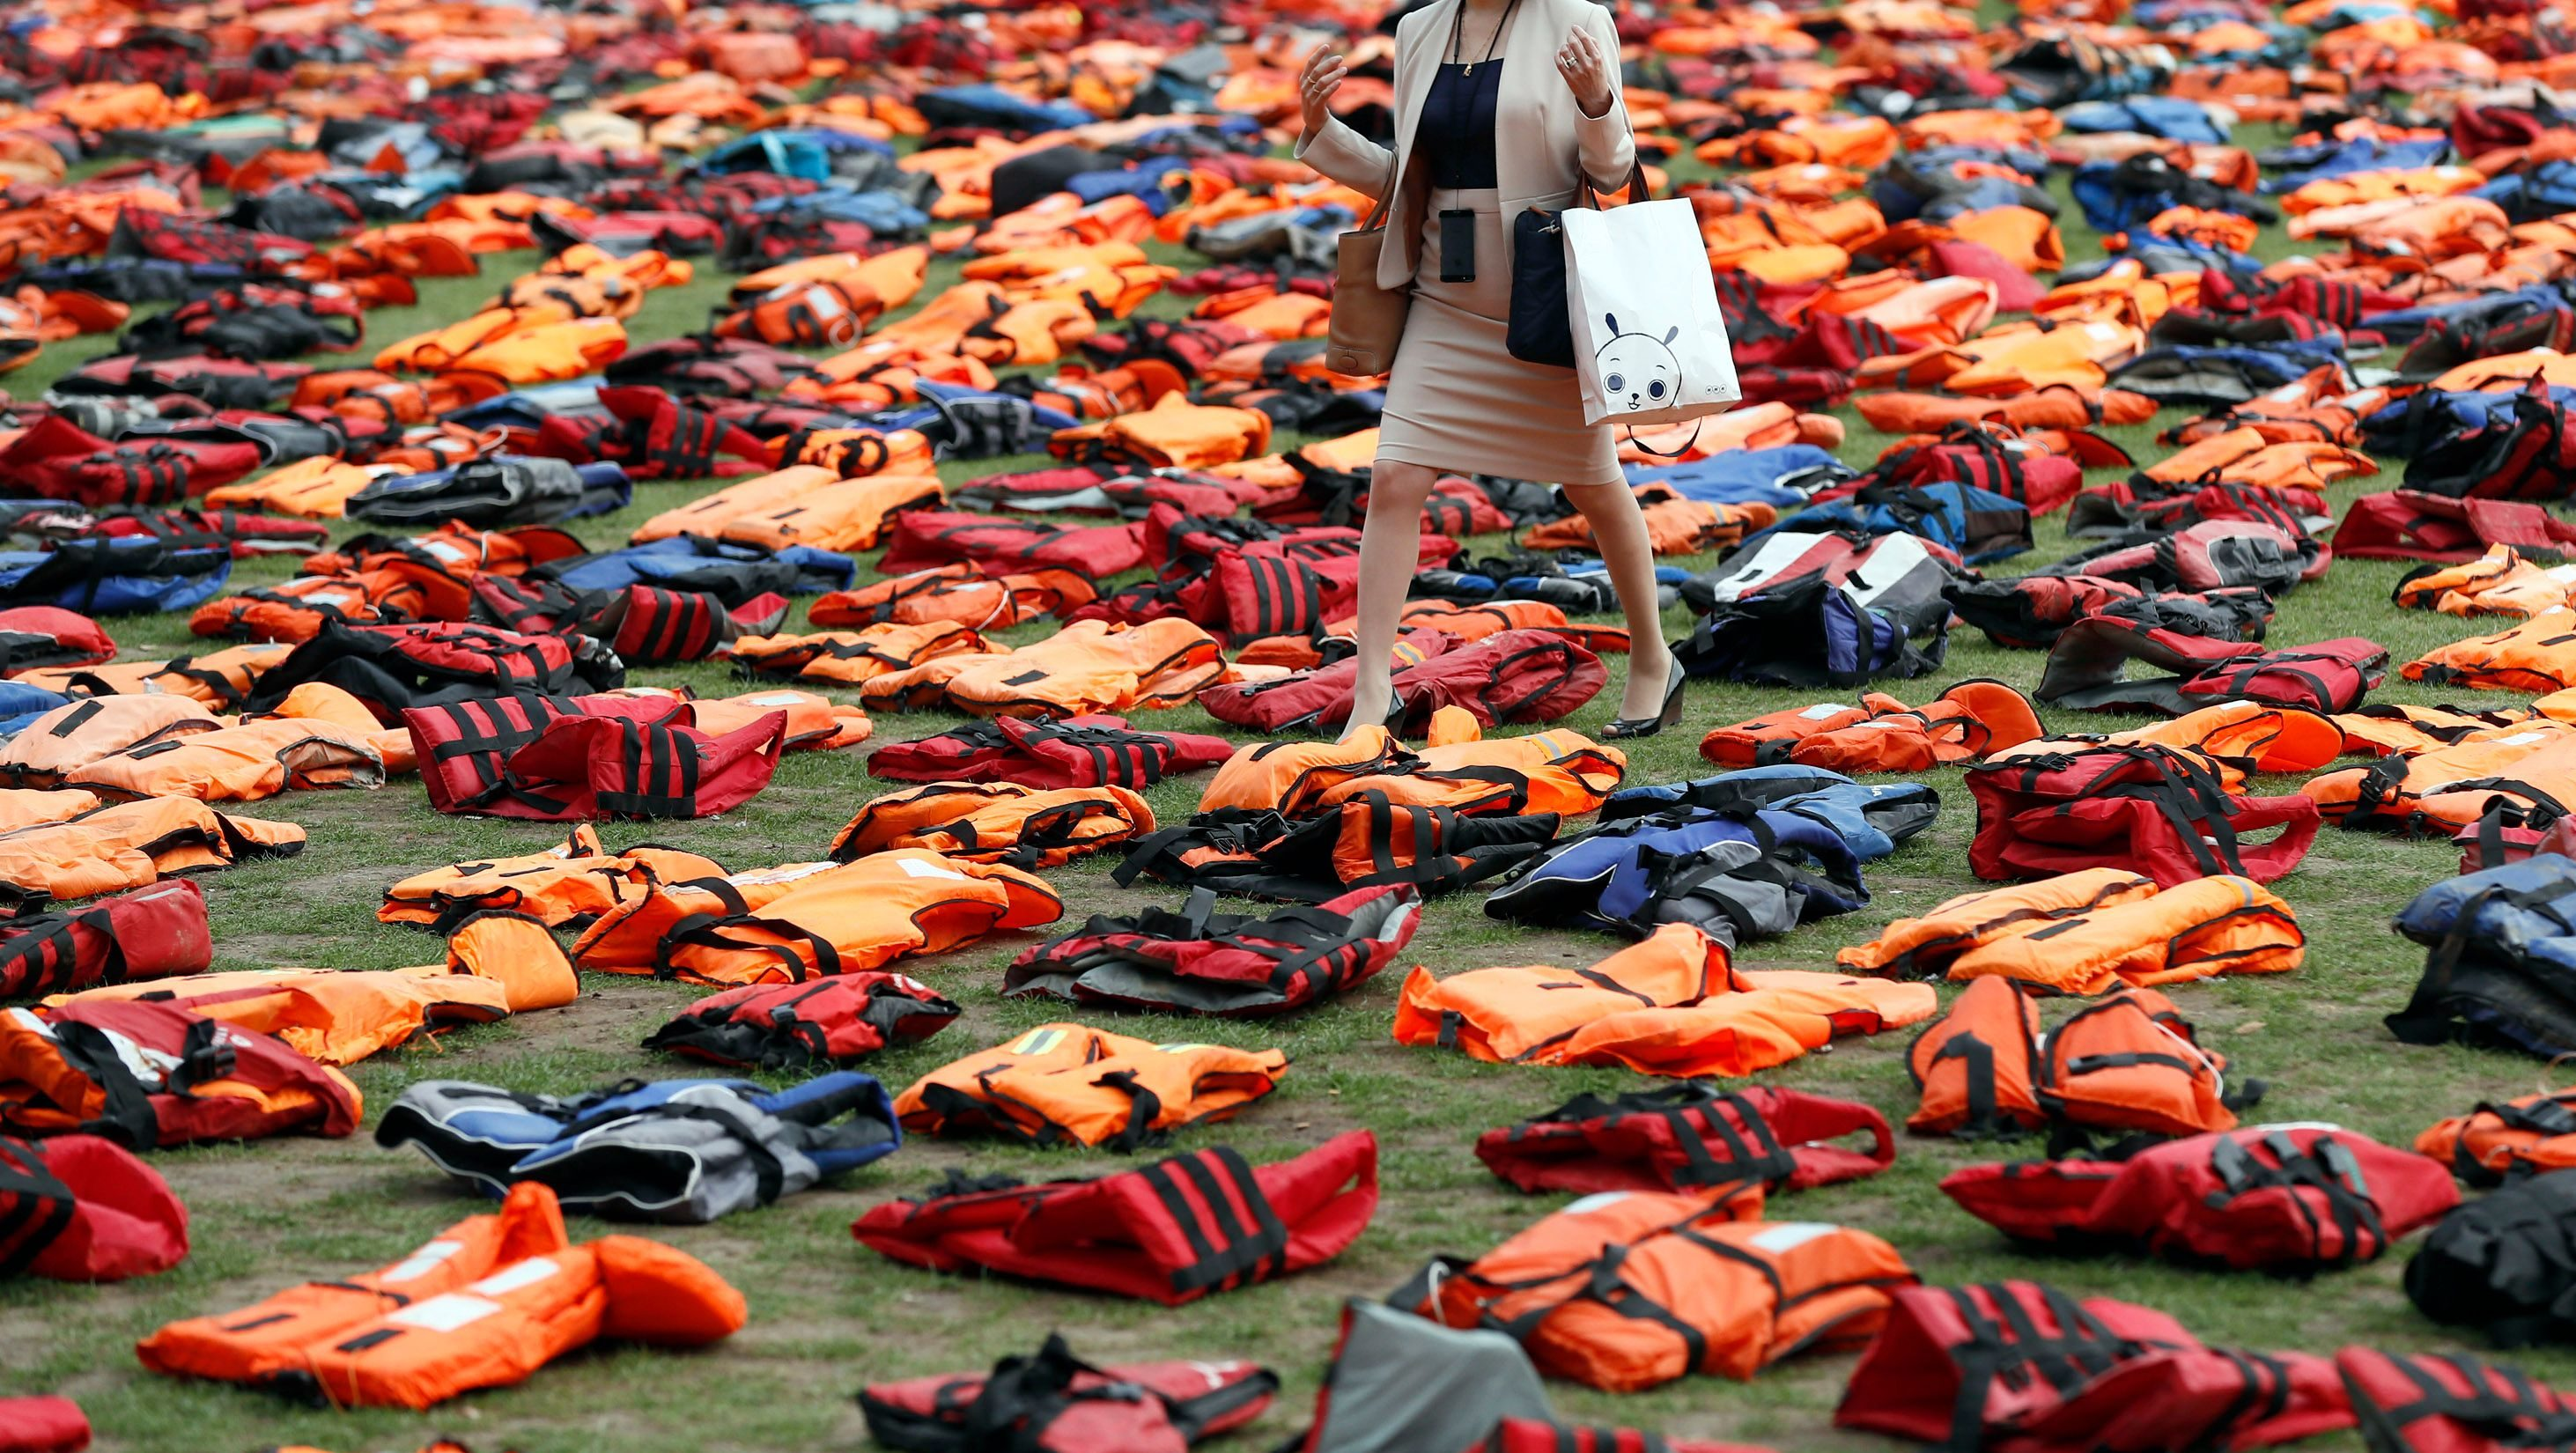 A display of lifejackets worn by refugees during their crossing from Turkey to the Greek island of Chois, are seen Parliament Square in central London, Britain September 19, 2016. The display was organised by a number of charities and refugees to help focus attention of the UN summit on Addressing Large Movements of Refugees and Migrants.